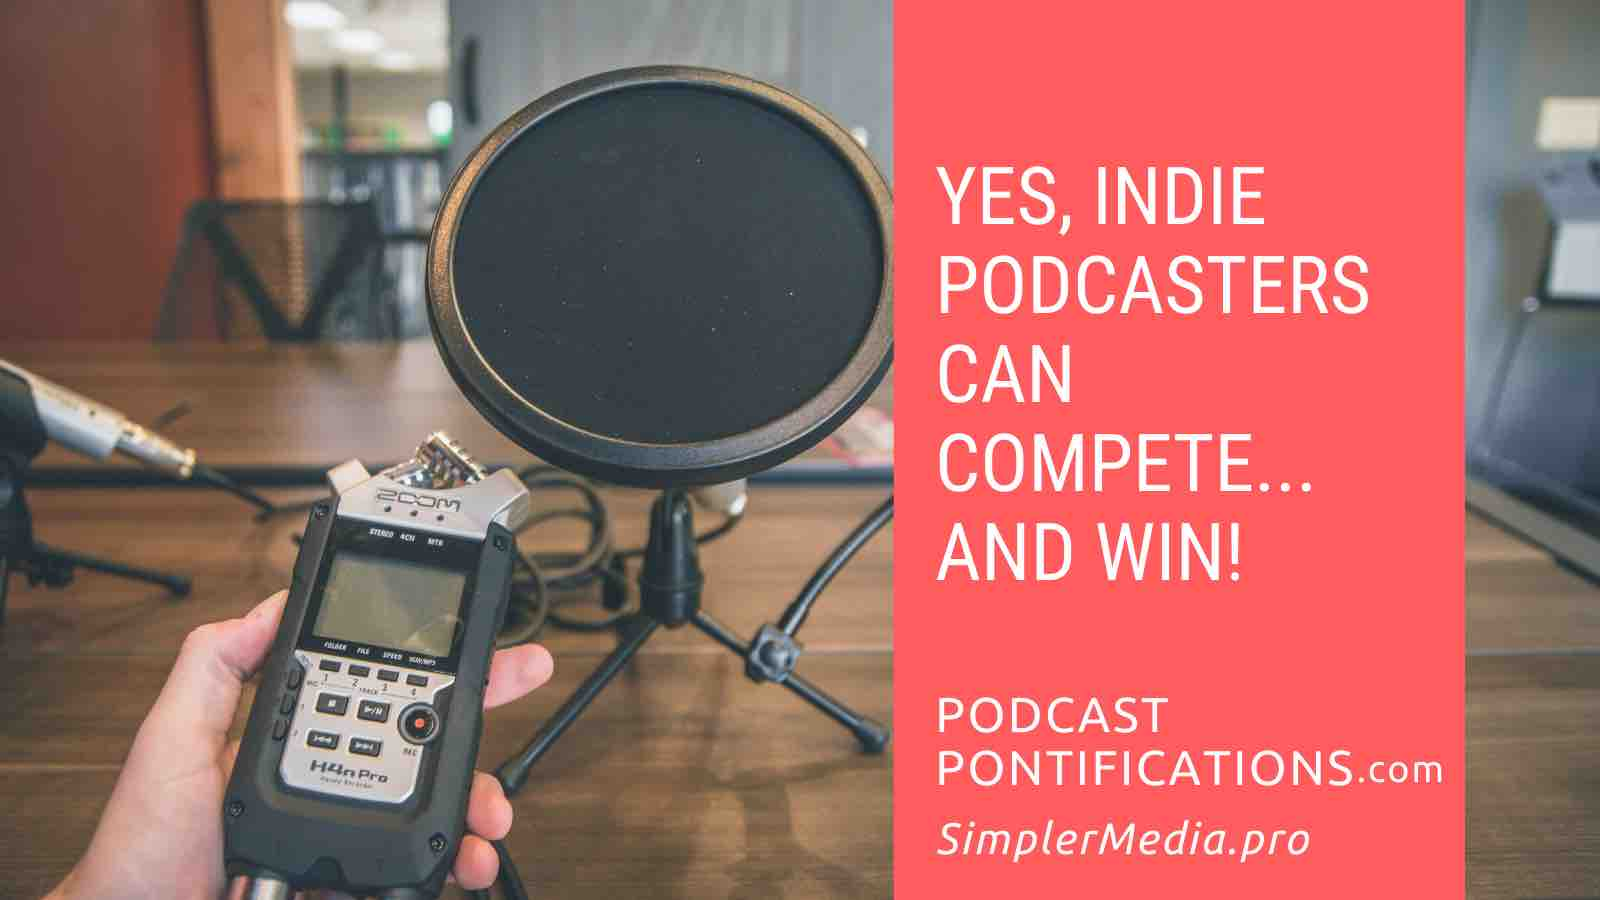 Yes, Indie Podcasters Can Compete... And Win!